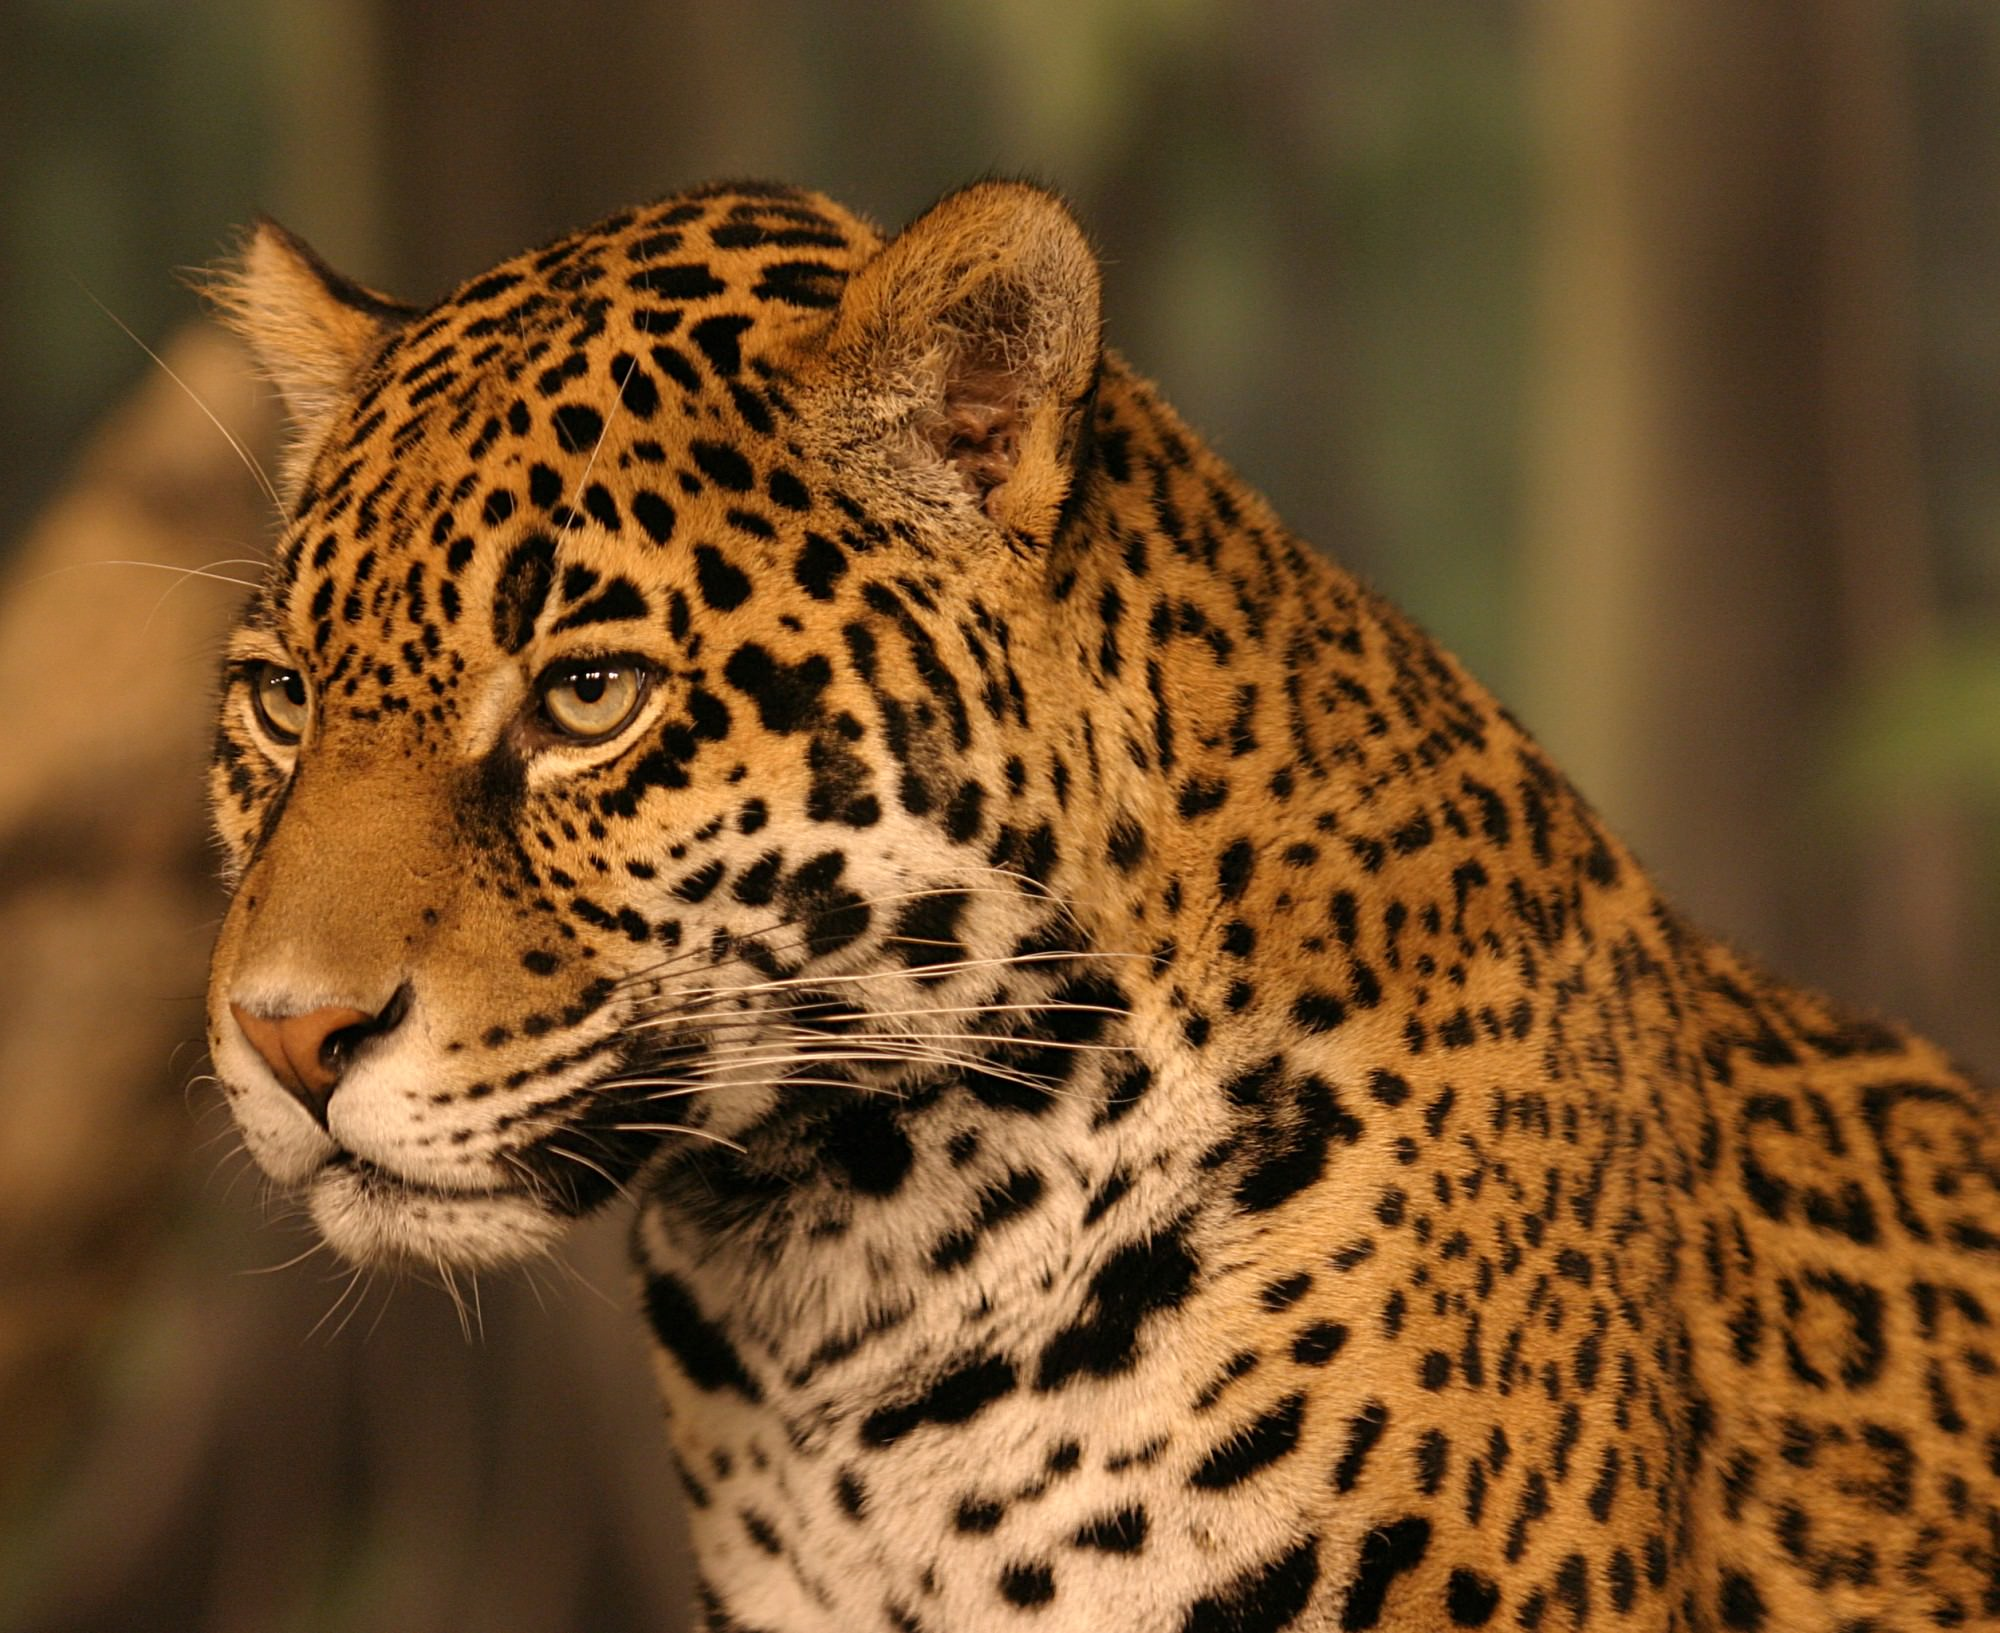 Jaguar - Image sourced from Wikipedia